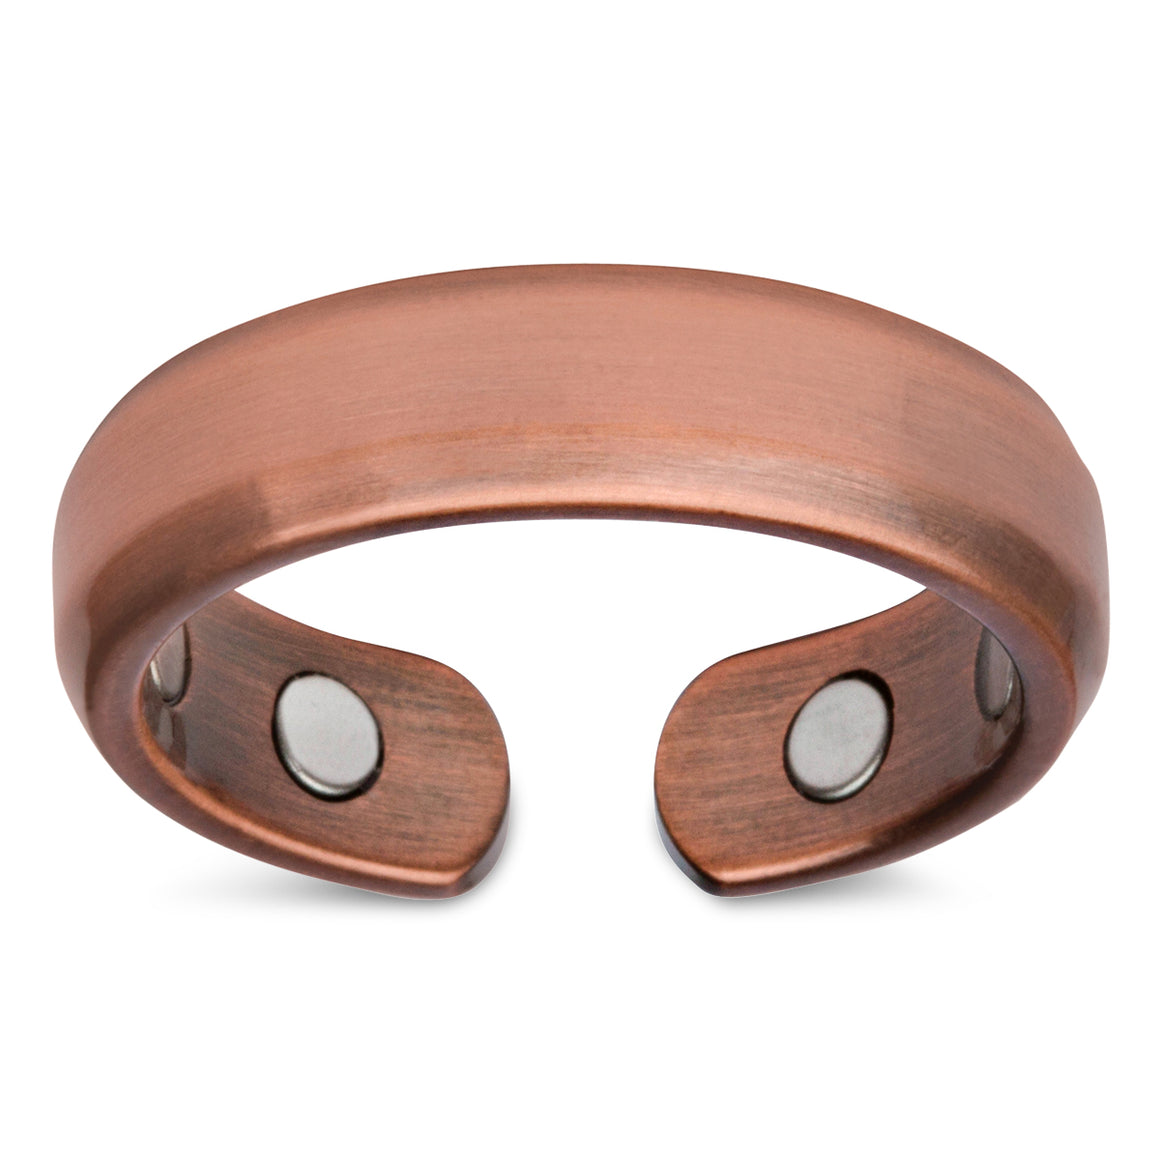 adjustable ring product copper men arthritis health pain open finger for rings relief jewelry magnetic vinterly women cuff simple pure